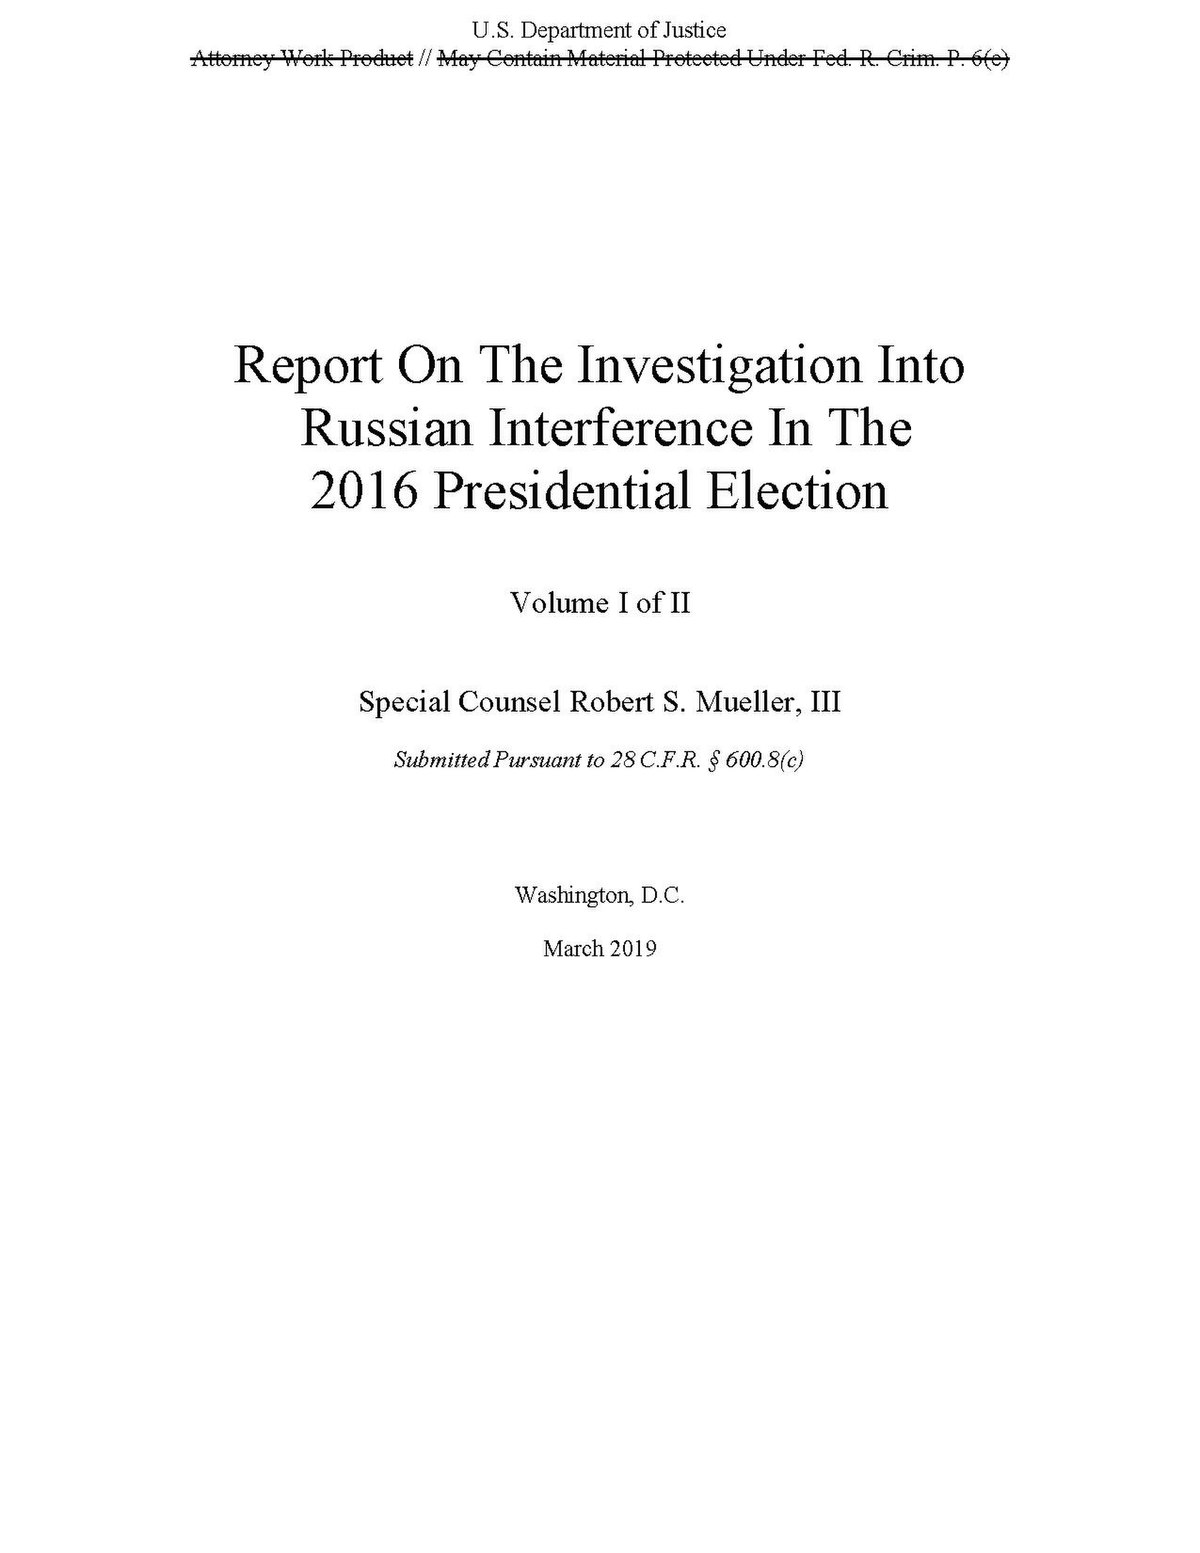 Radio Helsinki 8 129 Photos 97 Reviews Company Pikku Mueller Report Wikipedia